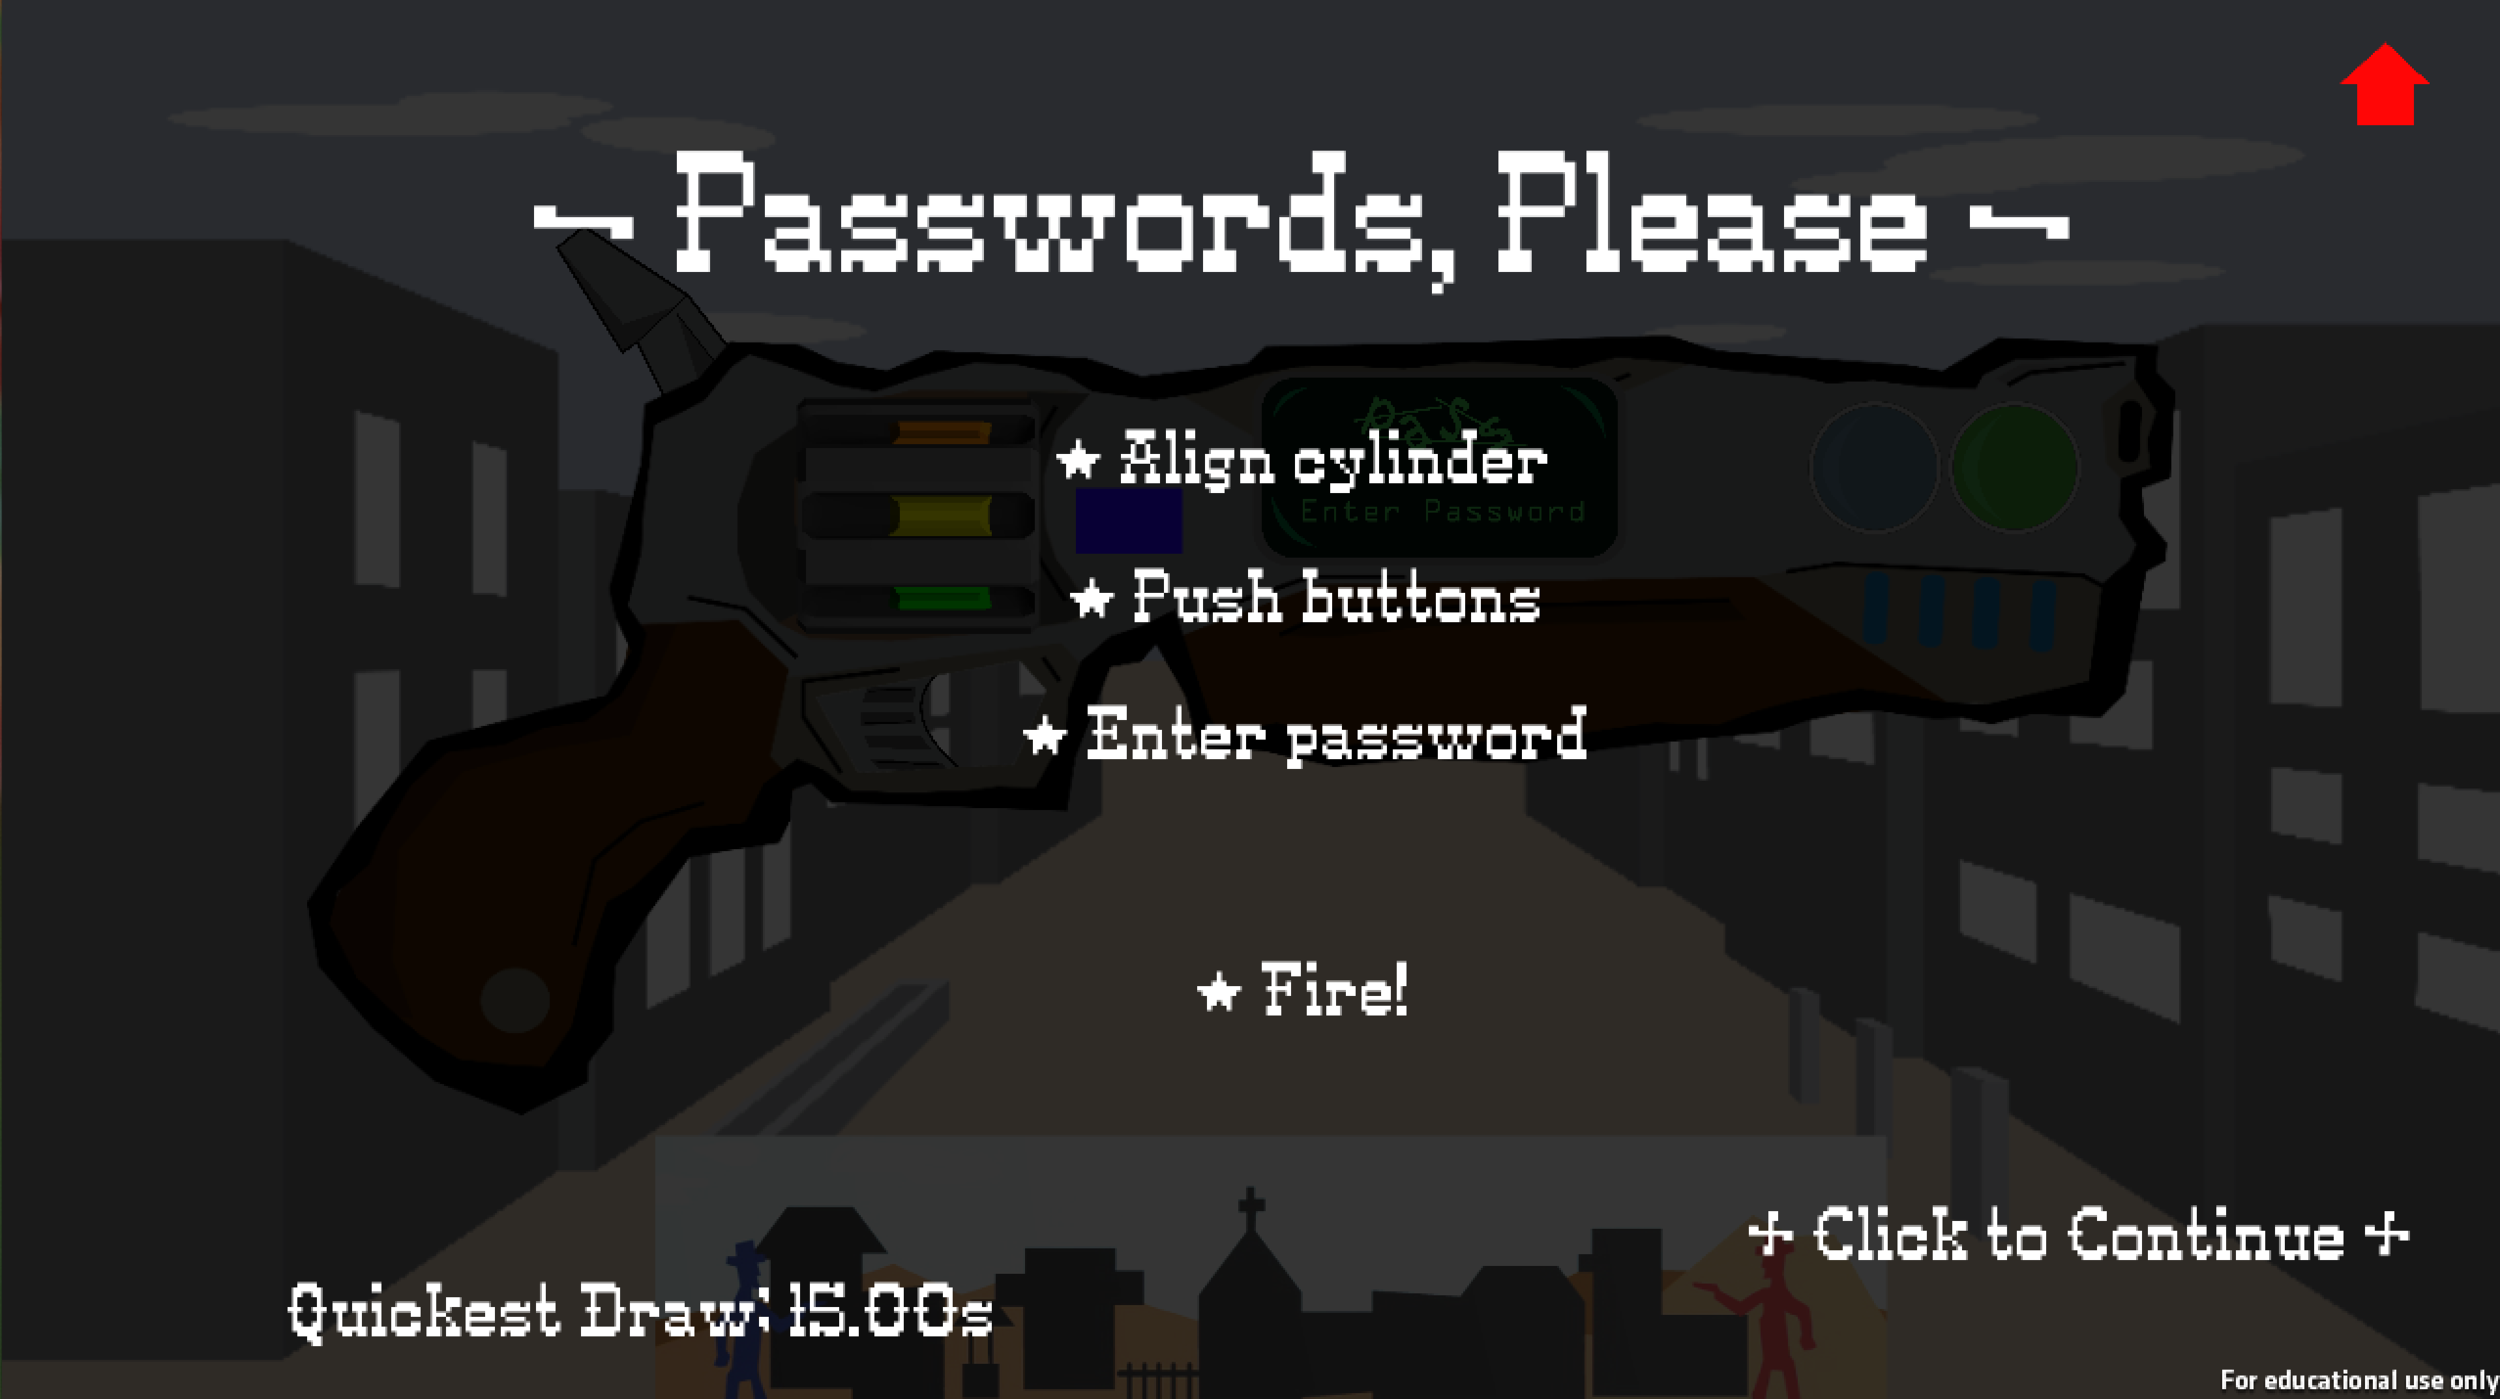 First Appearance of Password Puzzle